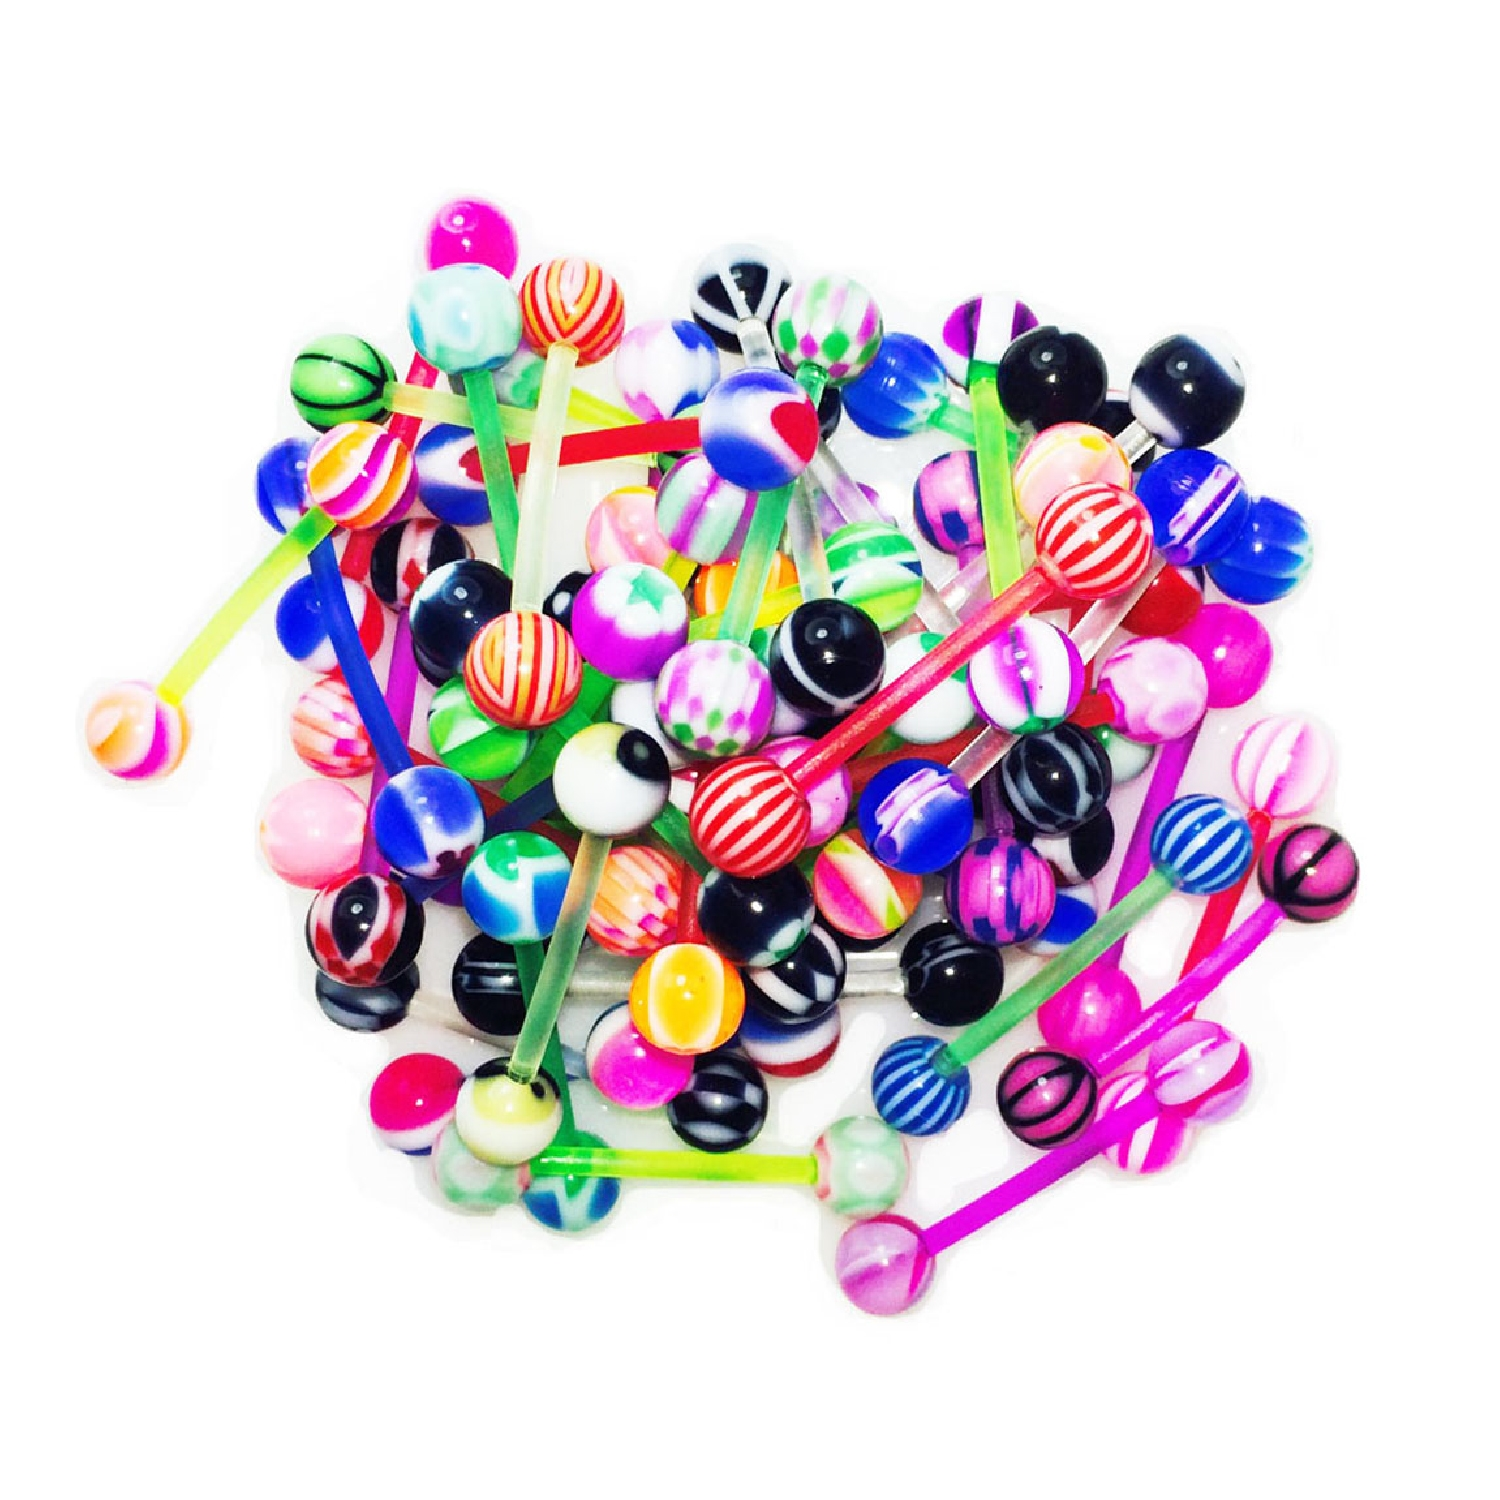 BodyJ4You 50PC Tongue Barbells Nipple Rings 14G Mix Acrylic Ball Flexible Bar Body Piercing Jewelry